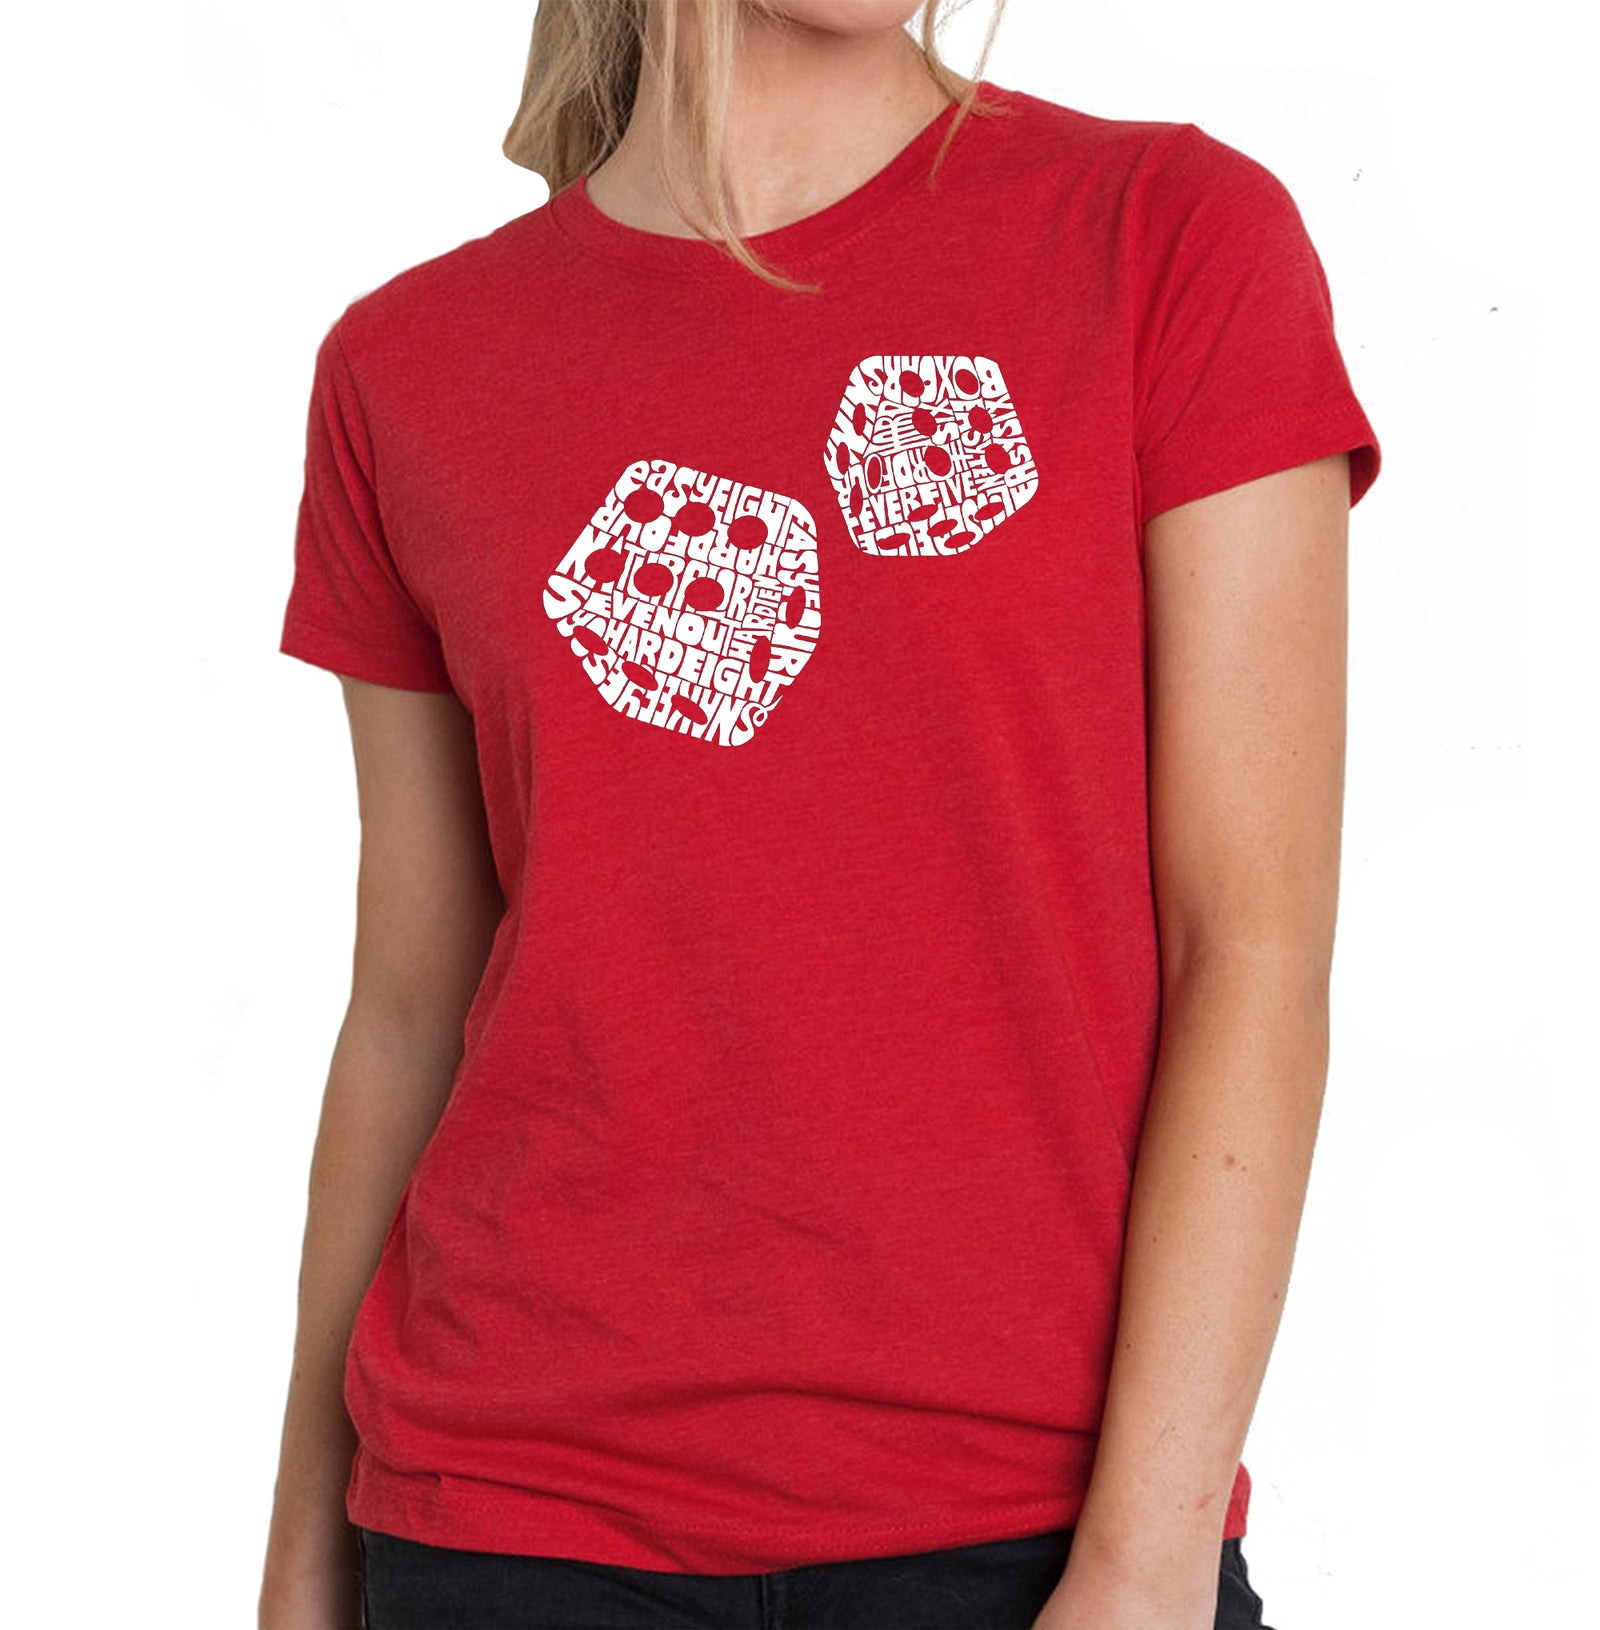 Women's Premium Blend Word Art T-shirt - DIFFERENT ROLLS THROWN IN THE GAME OF CRAPS